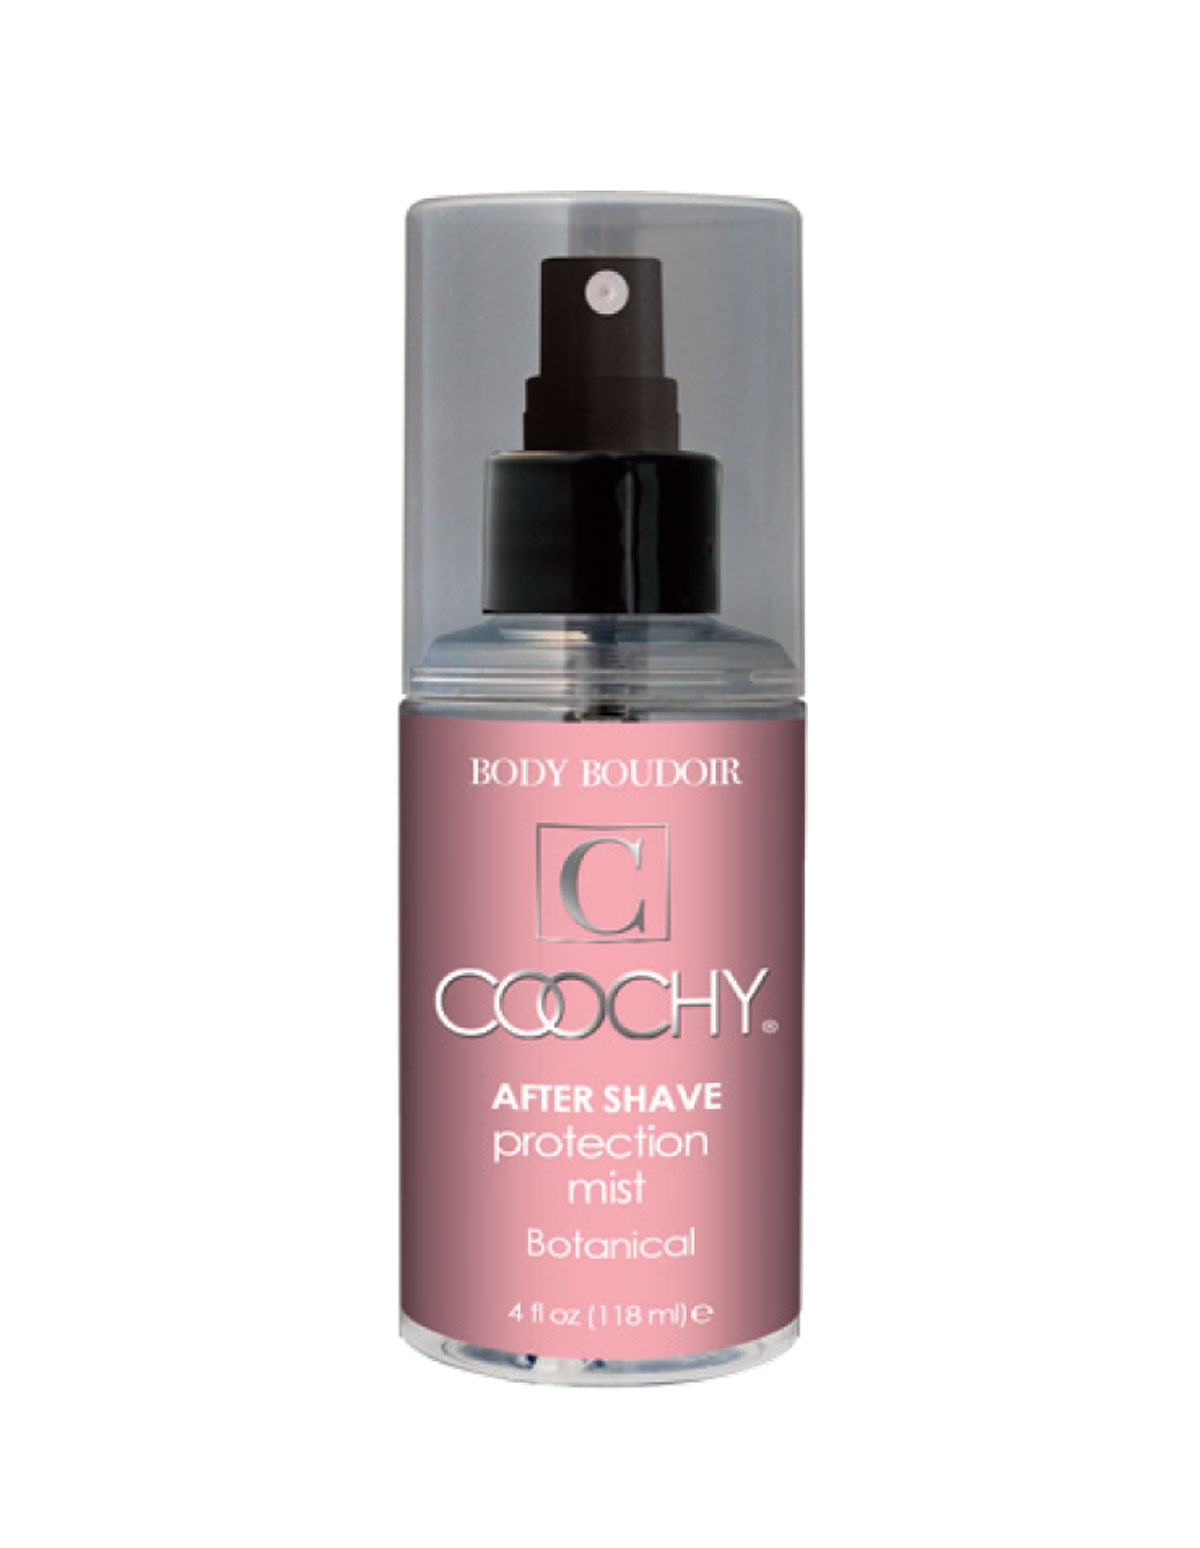 Coochy After Shave Mist